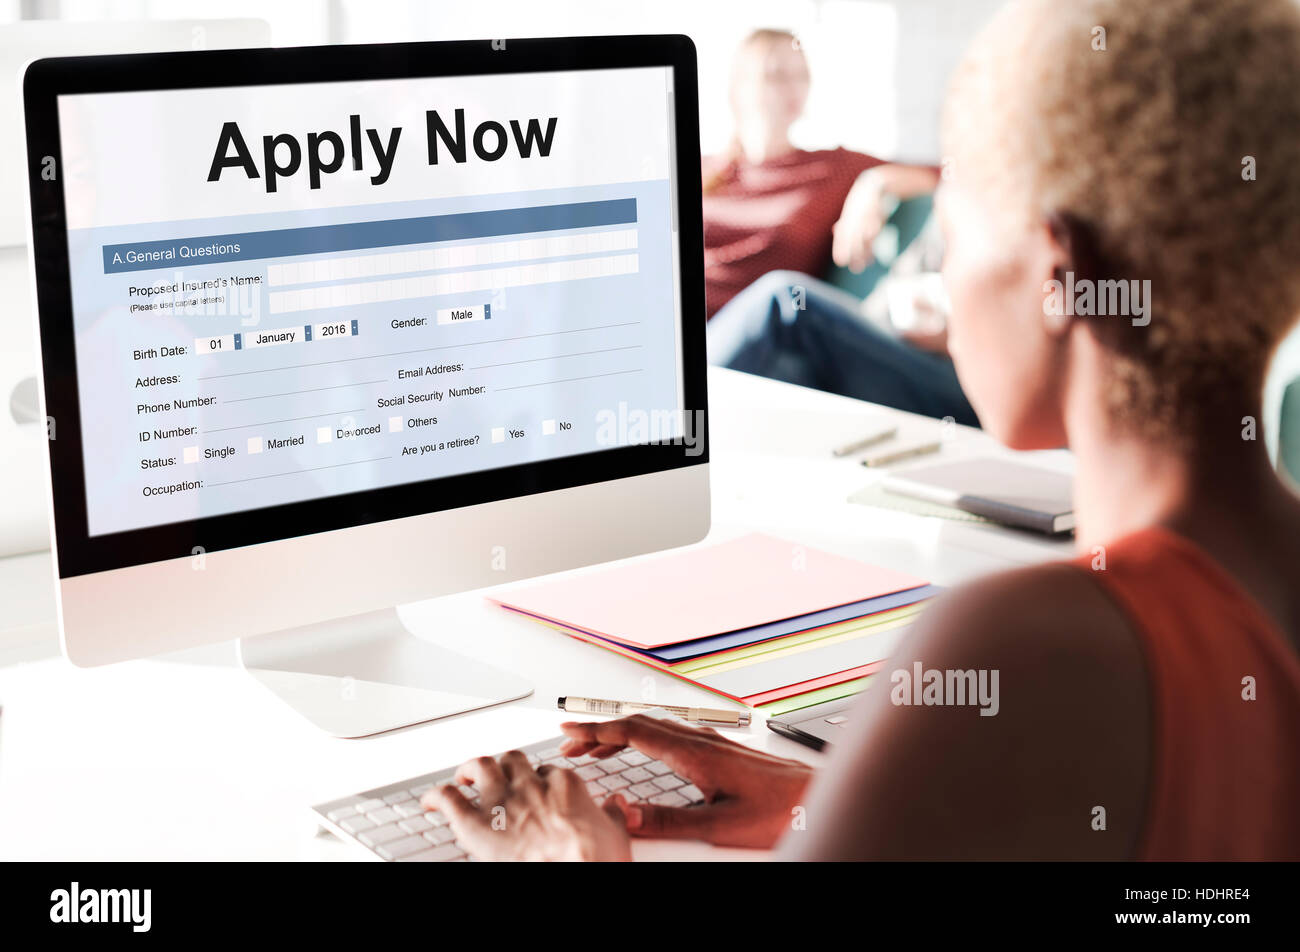 apply online application form recruitment concept stock photo apply online application form recruitment concept